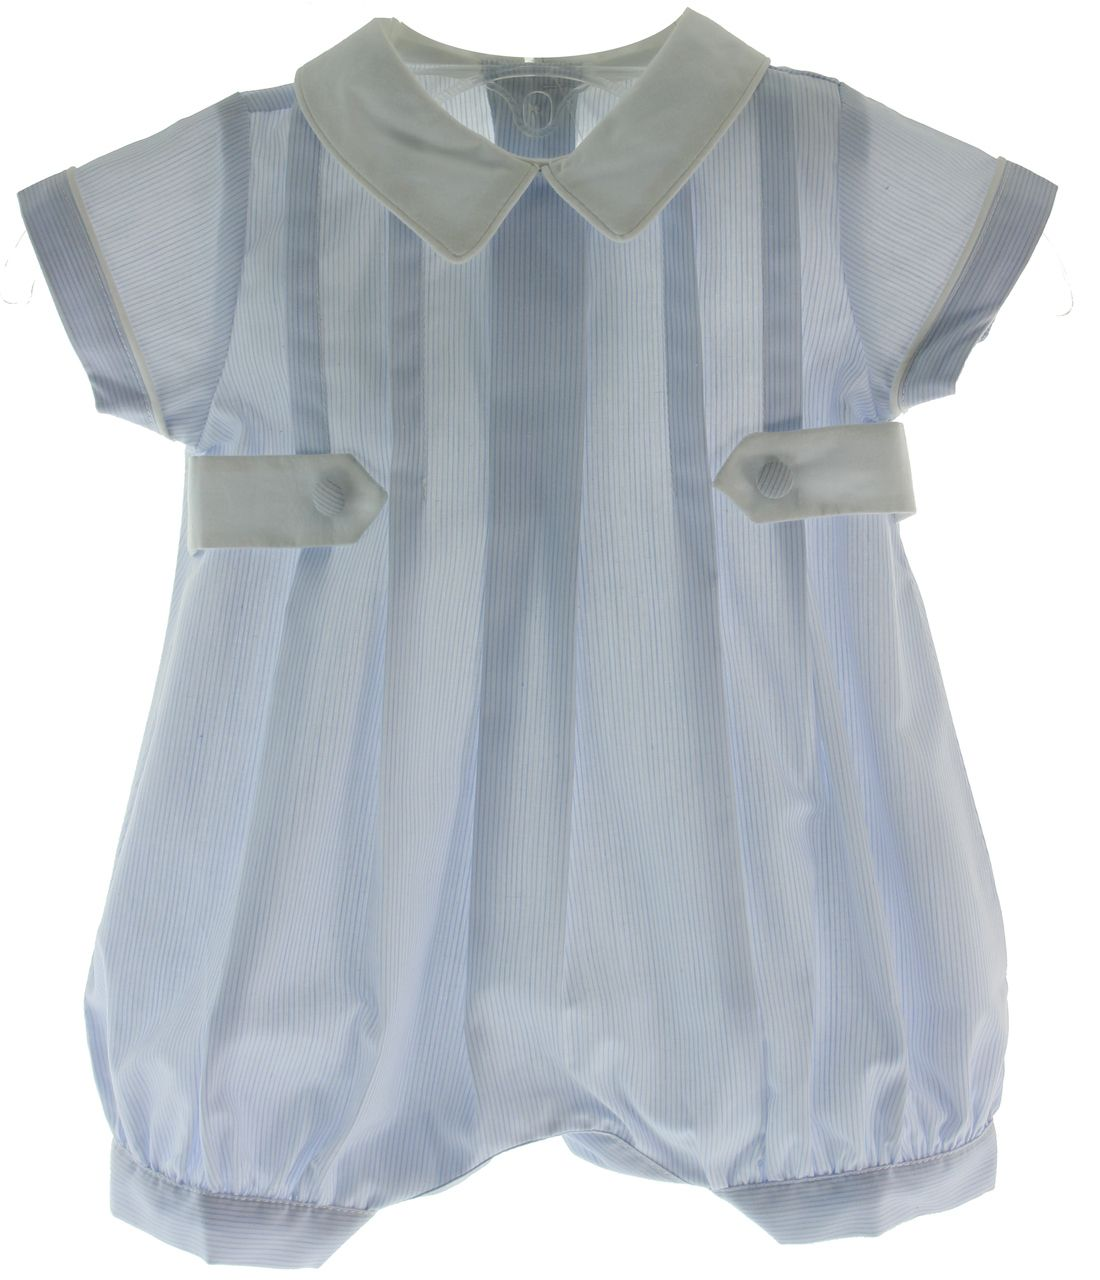 Baby Boys Blue Dressy Dedication Outfit with Side Tabs & Collar ...